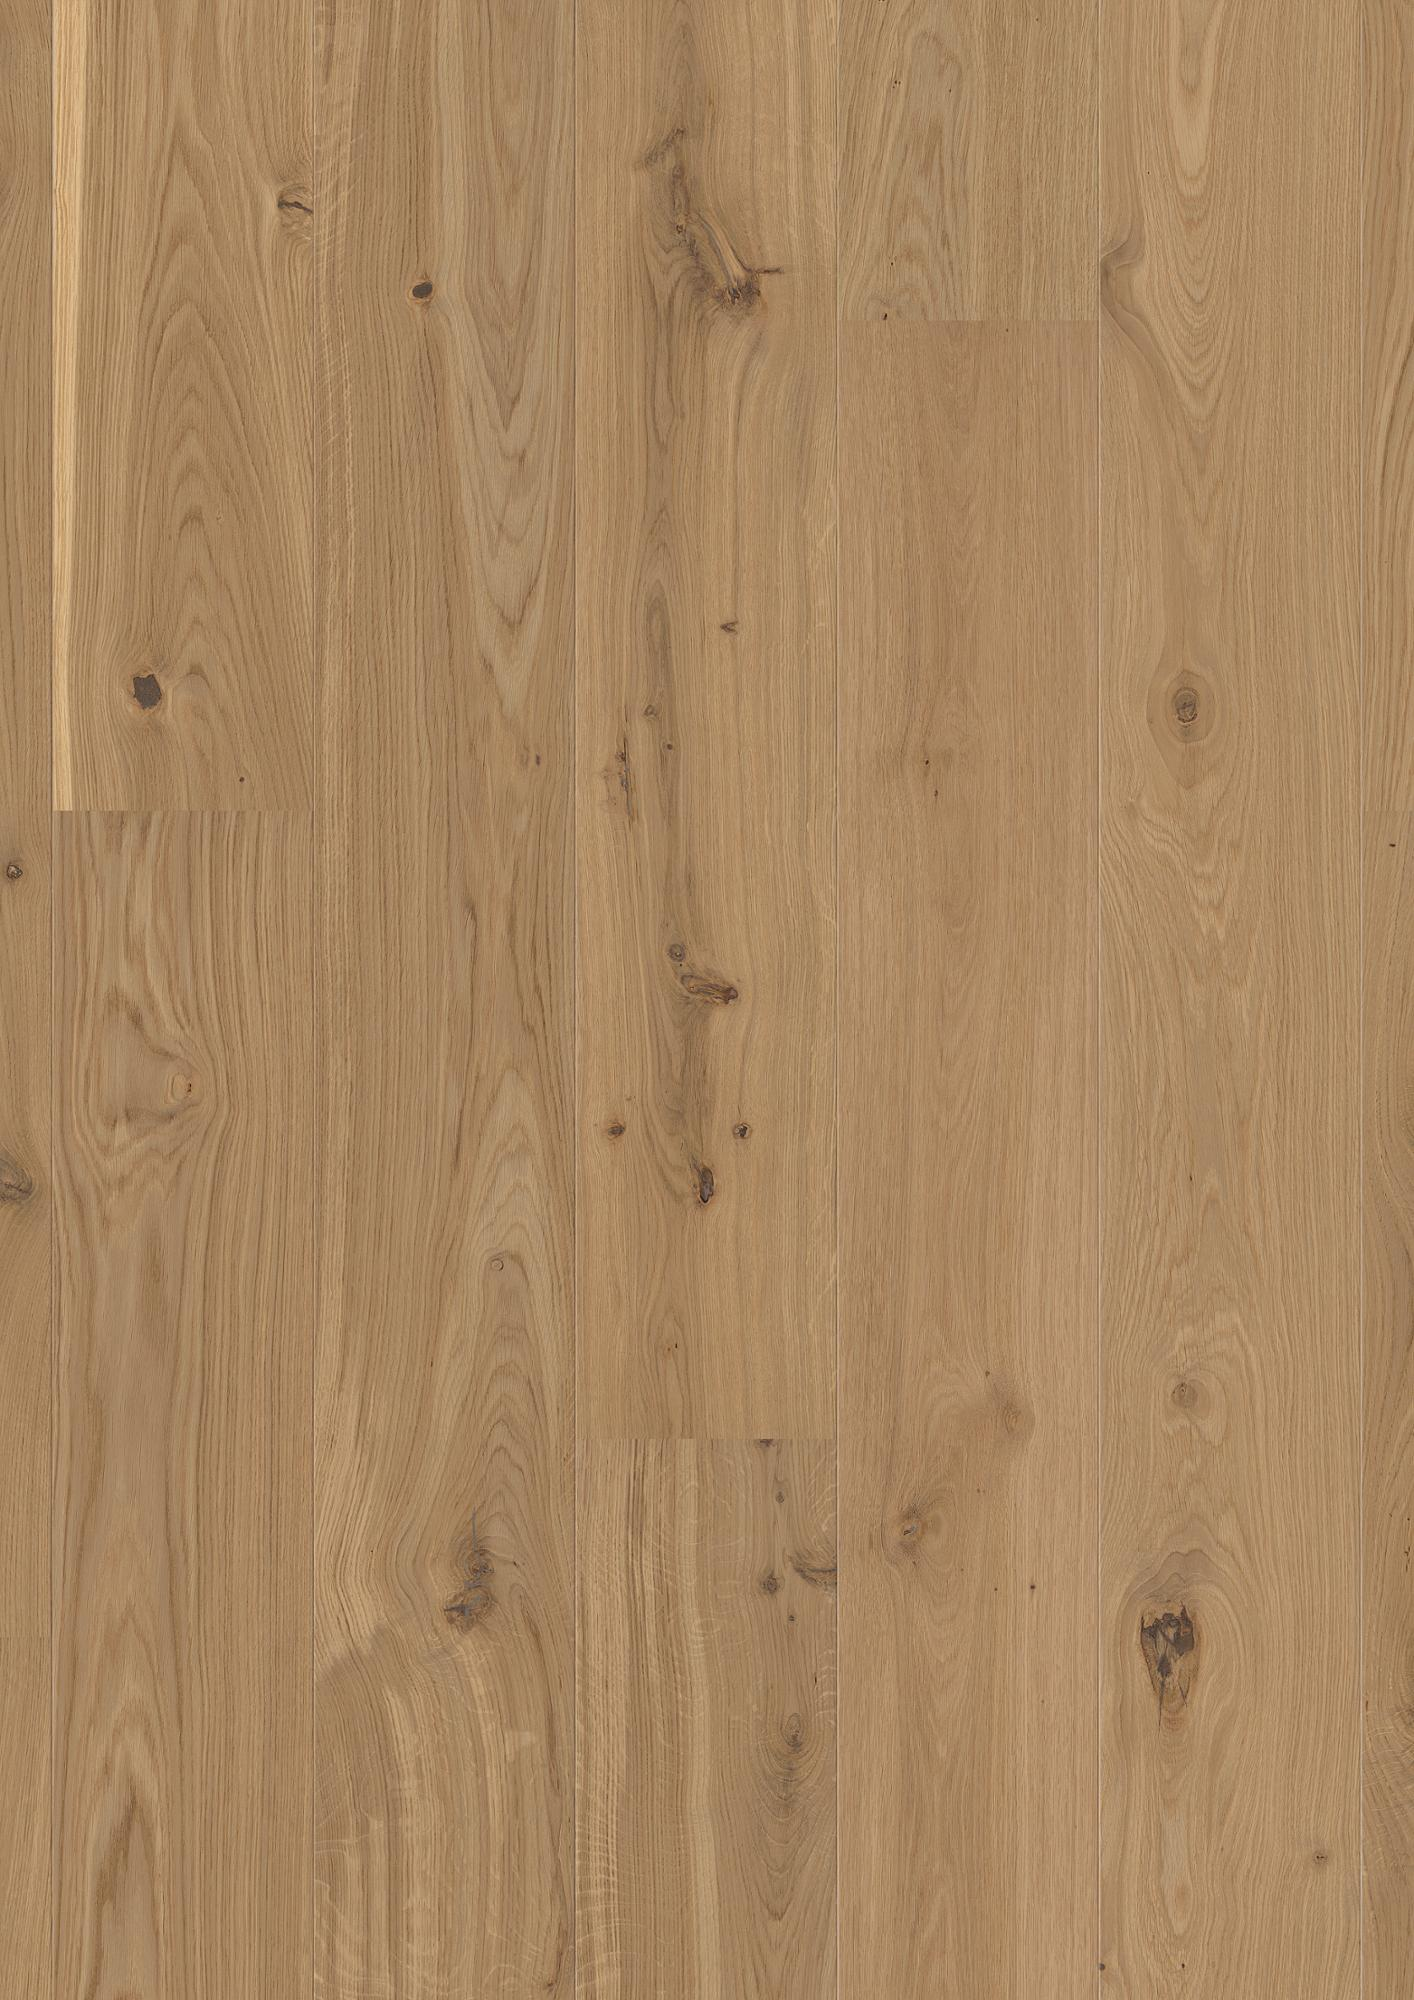 Oak Authentic, Live Natural oil, Brushed, Beveled 2V, Plank Castle, 14x209x2200mm